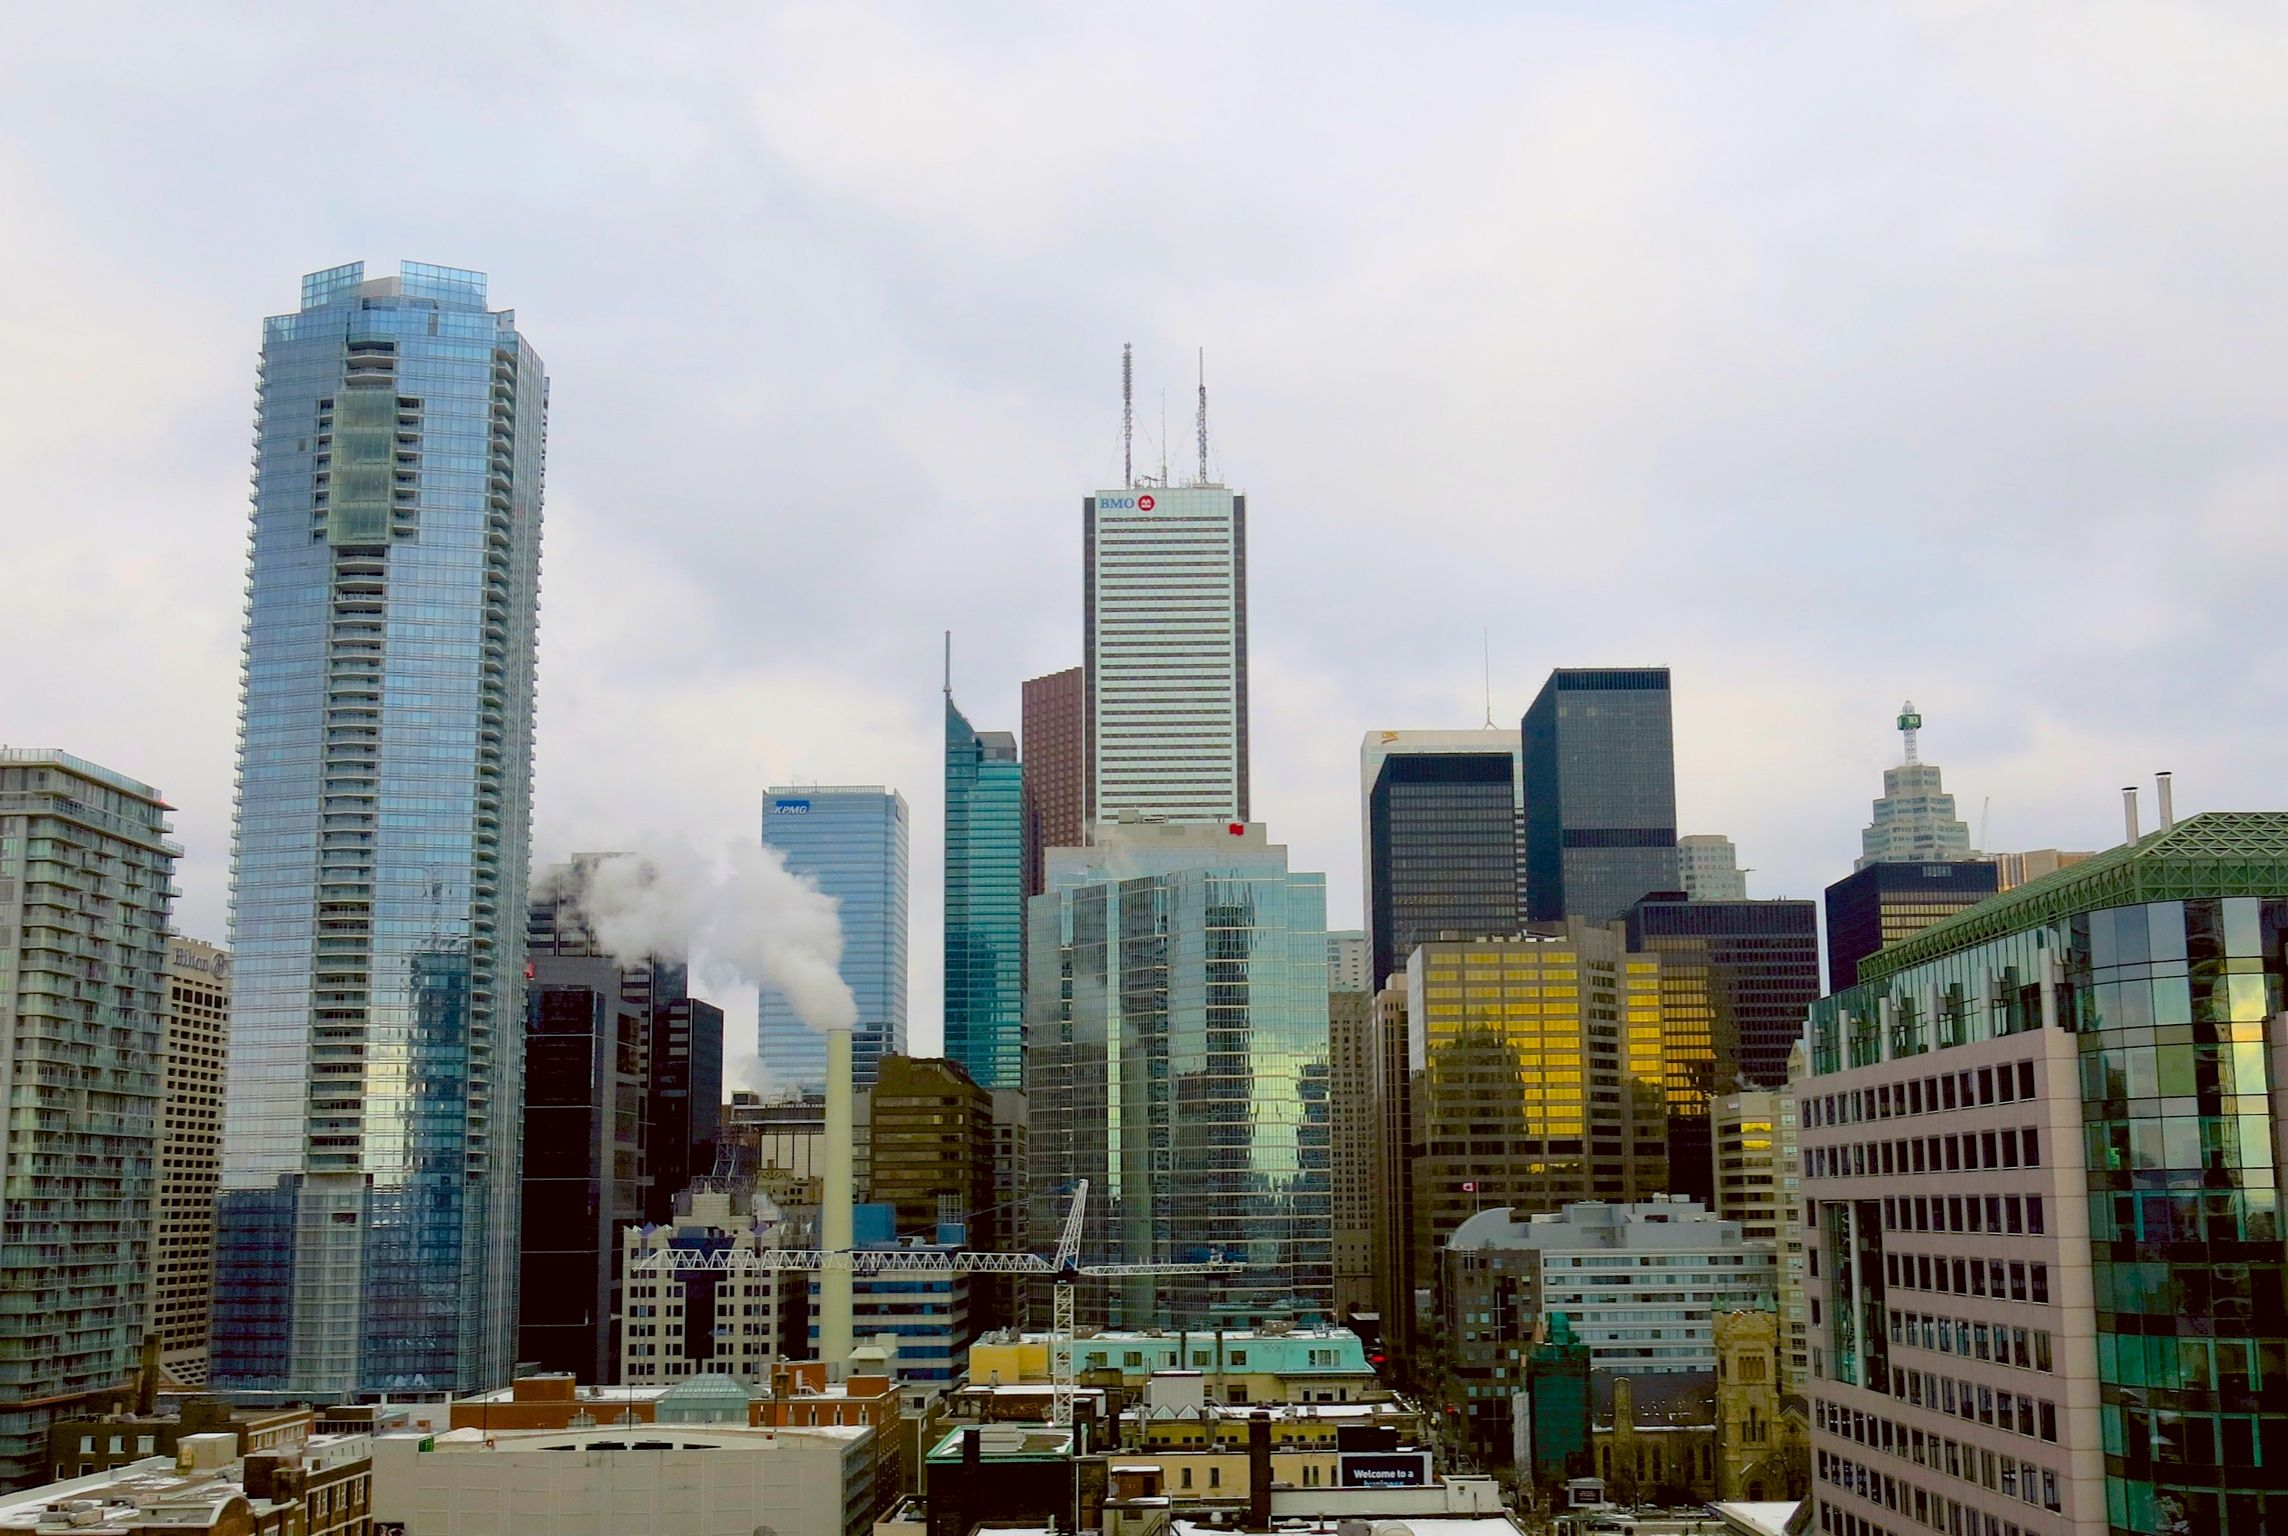 Toronto Seen From A Condo Building At John St King St W In The Entertainment District In Downtown Toronto